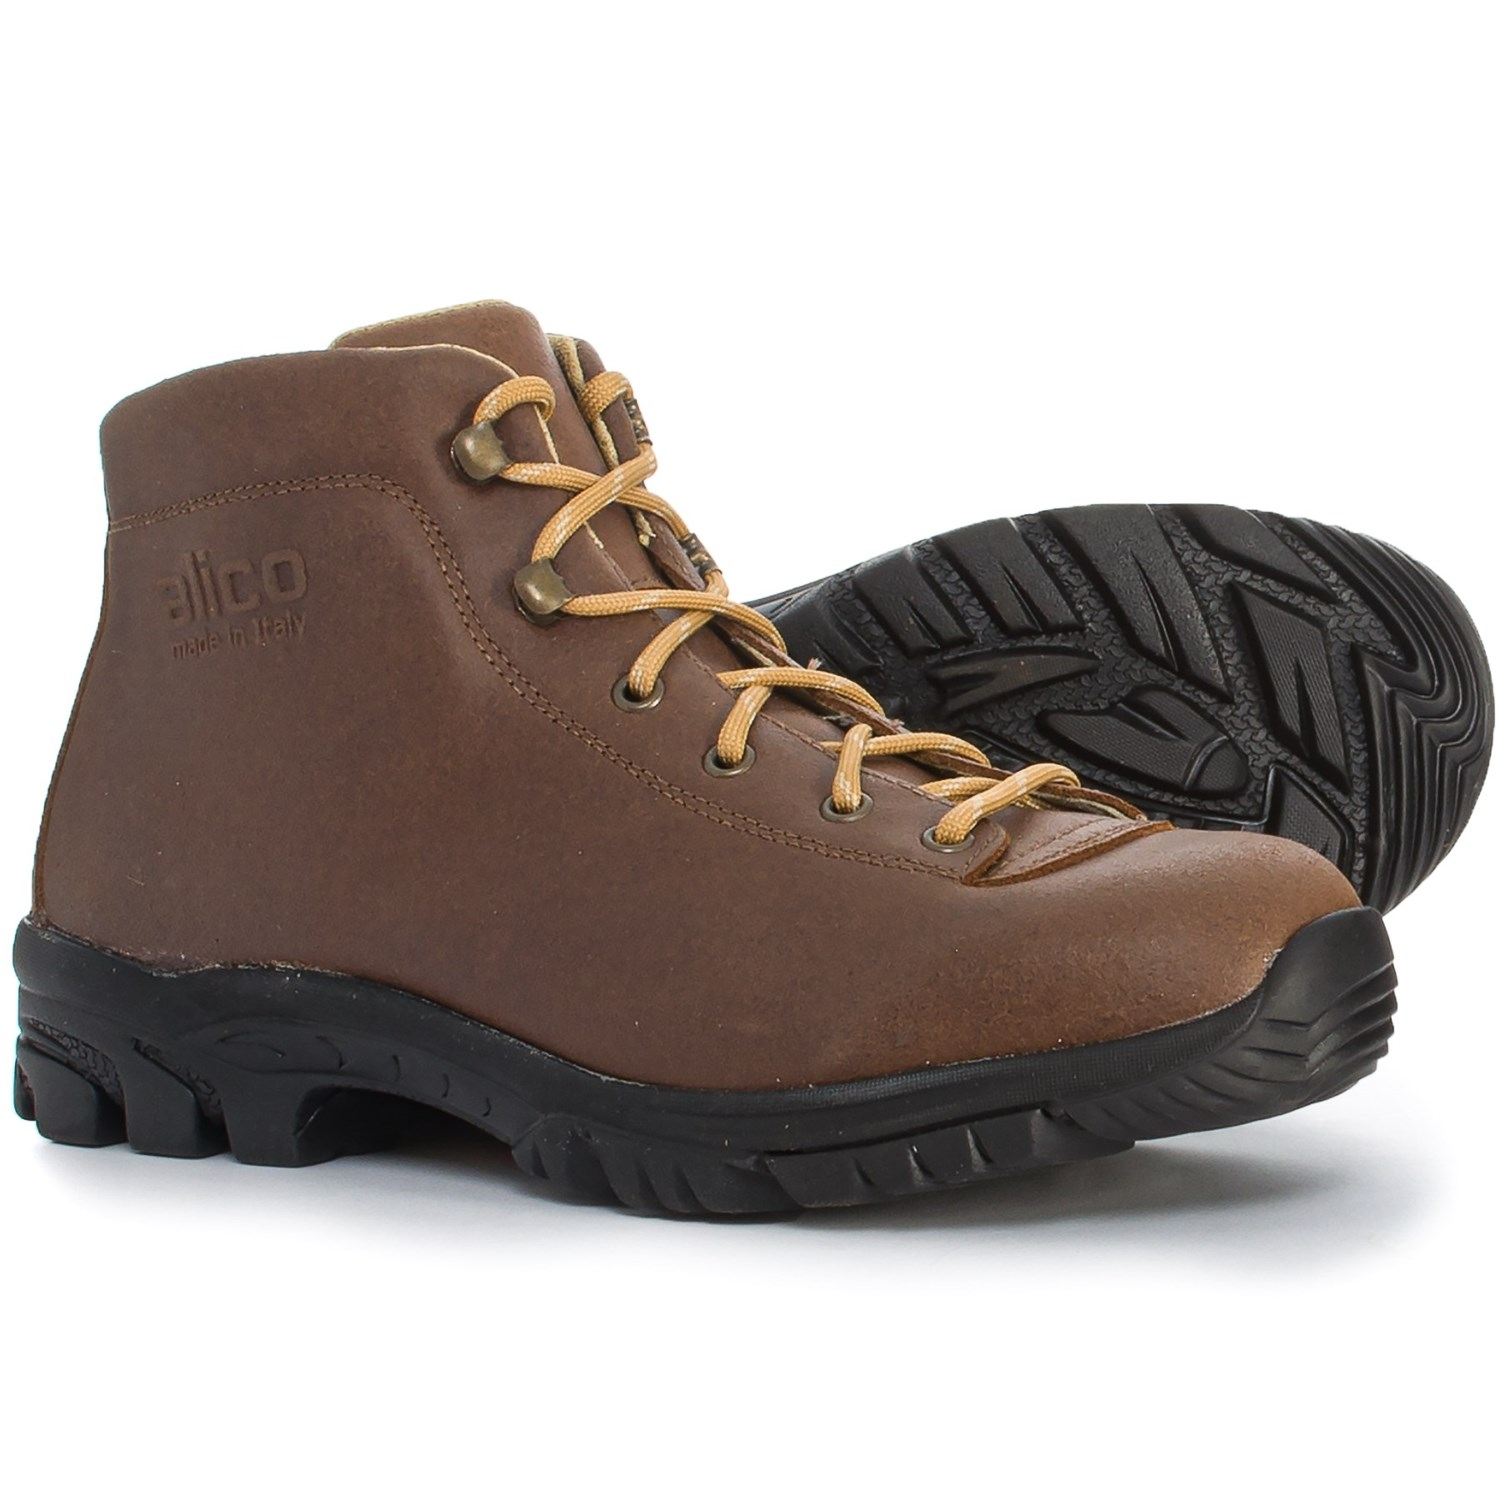 b79eb01bc11 Alico Made in Italy Belluno Hiking Boots - Perwanger® Leather (Men)